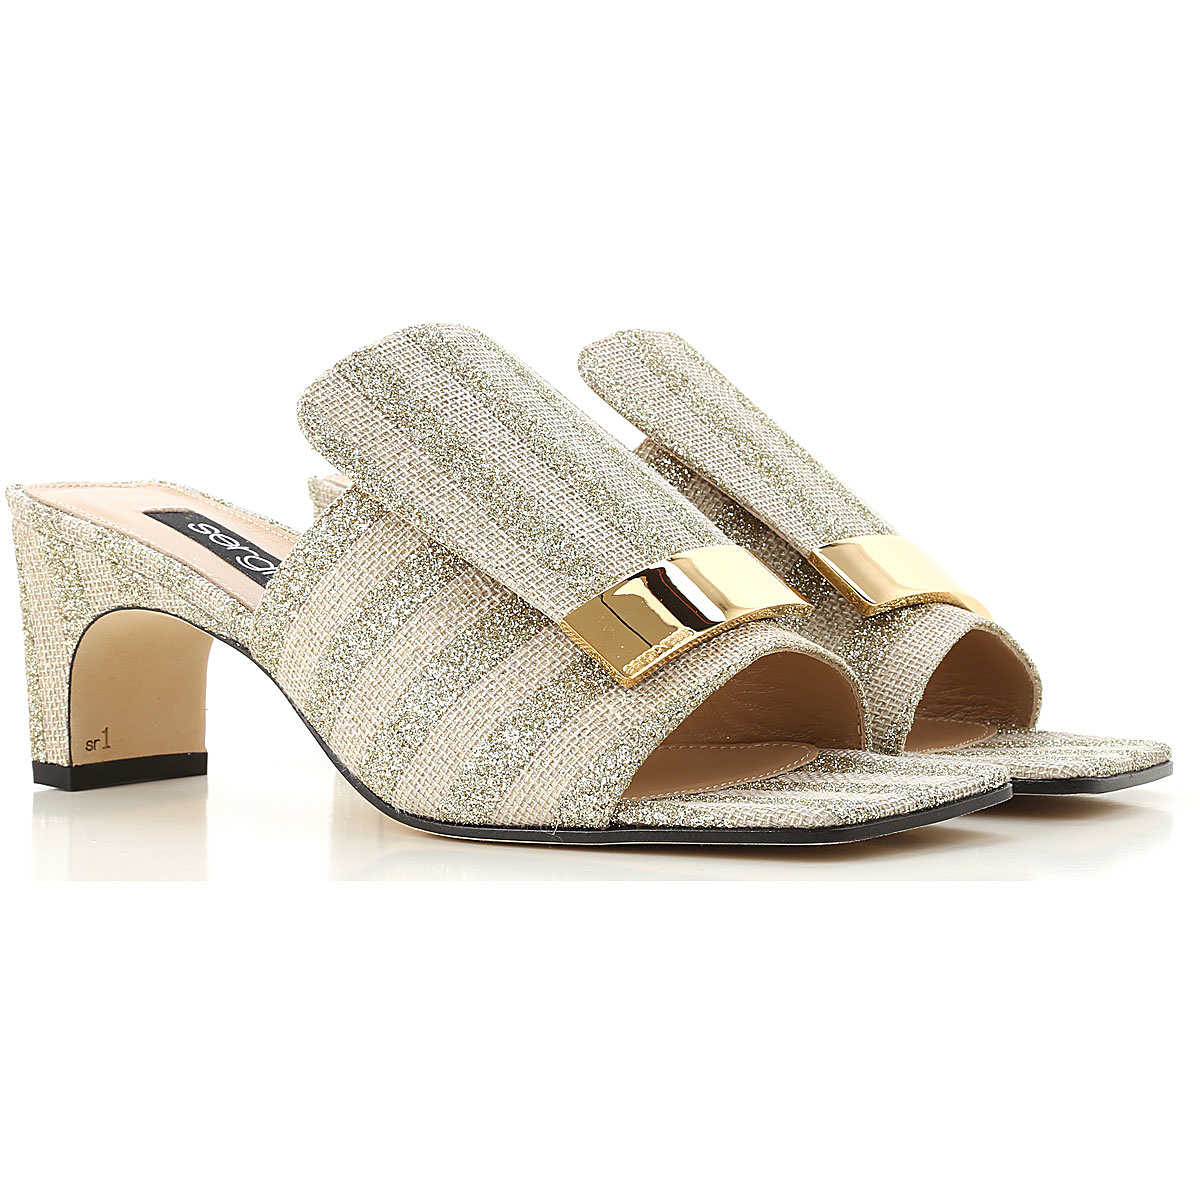 Sergio Rossi Sandals for Women On Sale Gold DK - GOOFASH - Womens SANDALS